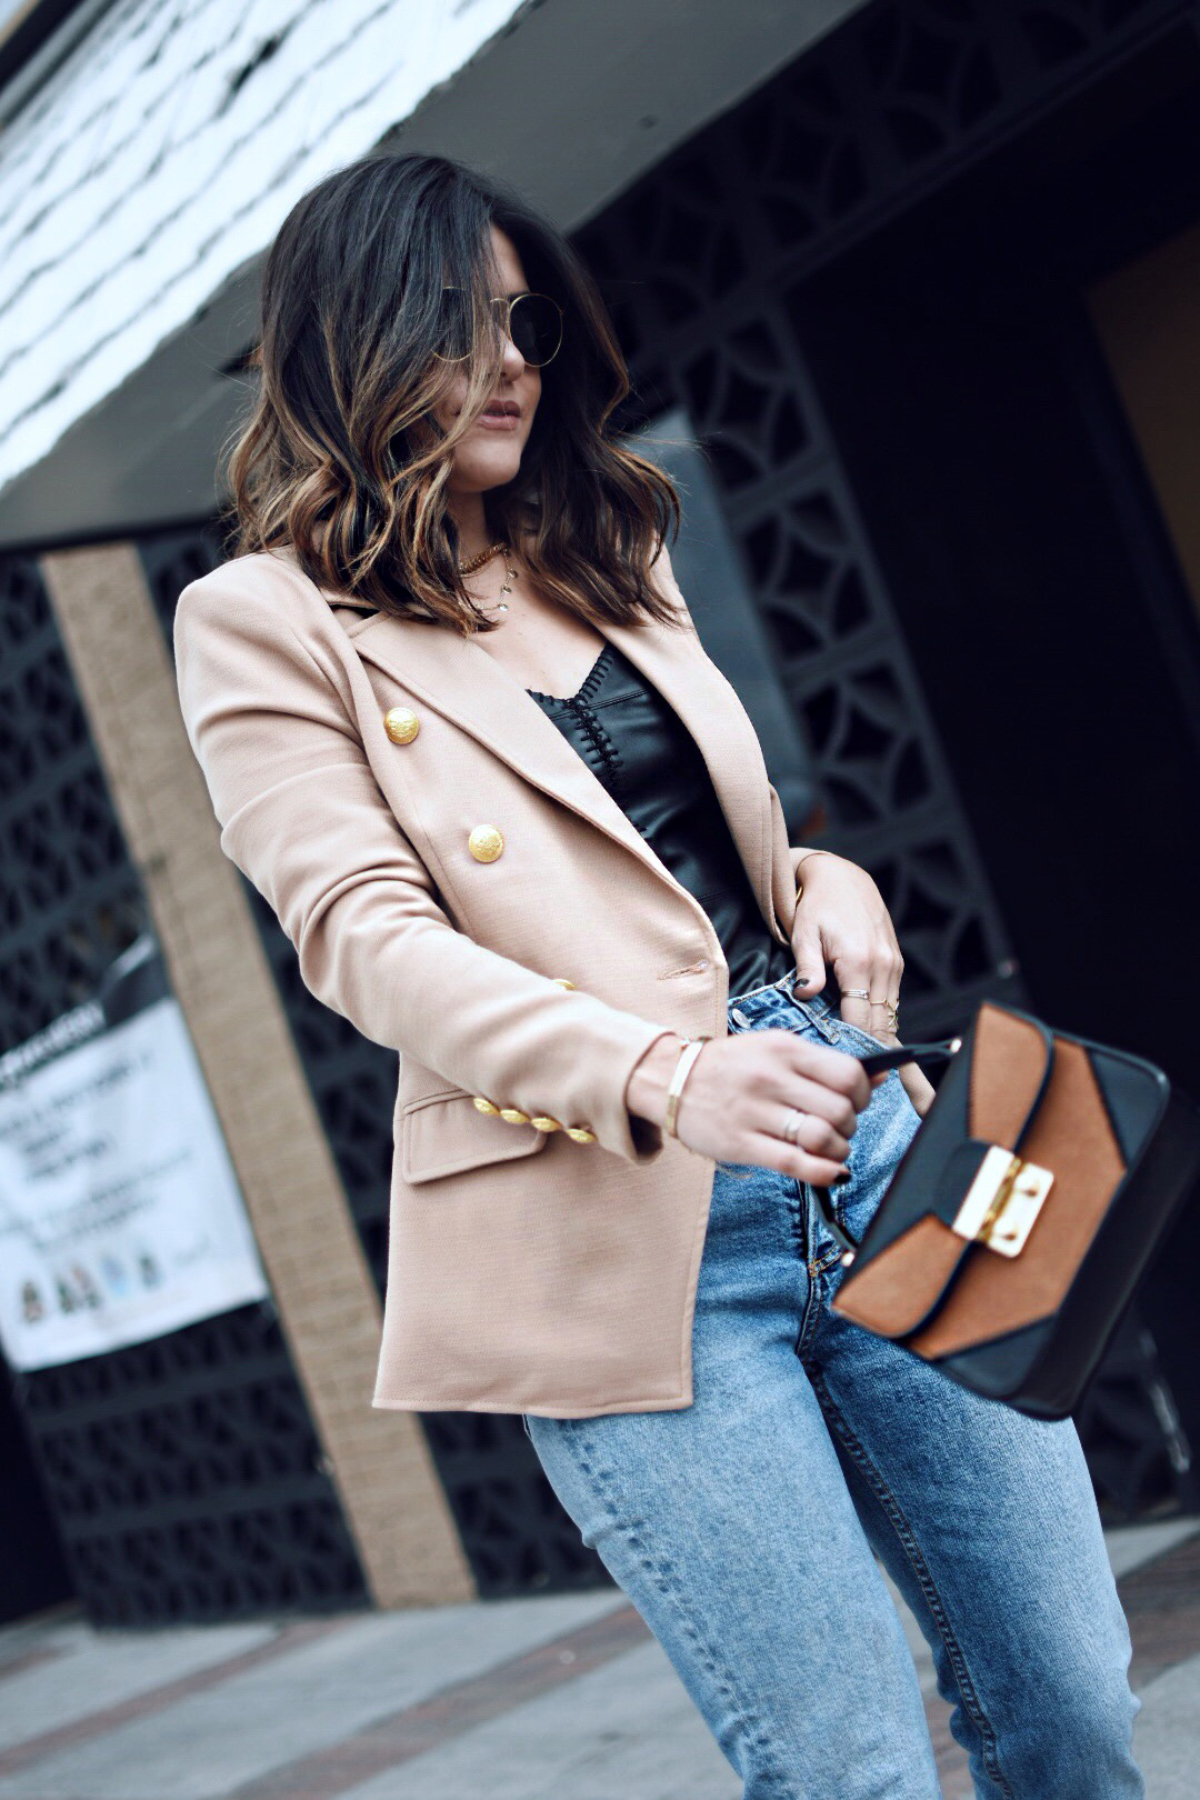 Carolina Hellal of Chic Talk wearing a Missguided blazer, Rag and bone jeans, Charming Charlie bag, Rayban sunglasses, and Sam Edelman nude pumps.